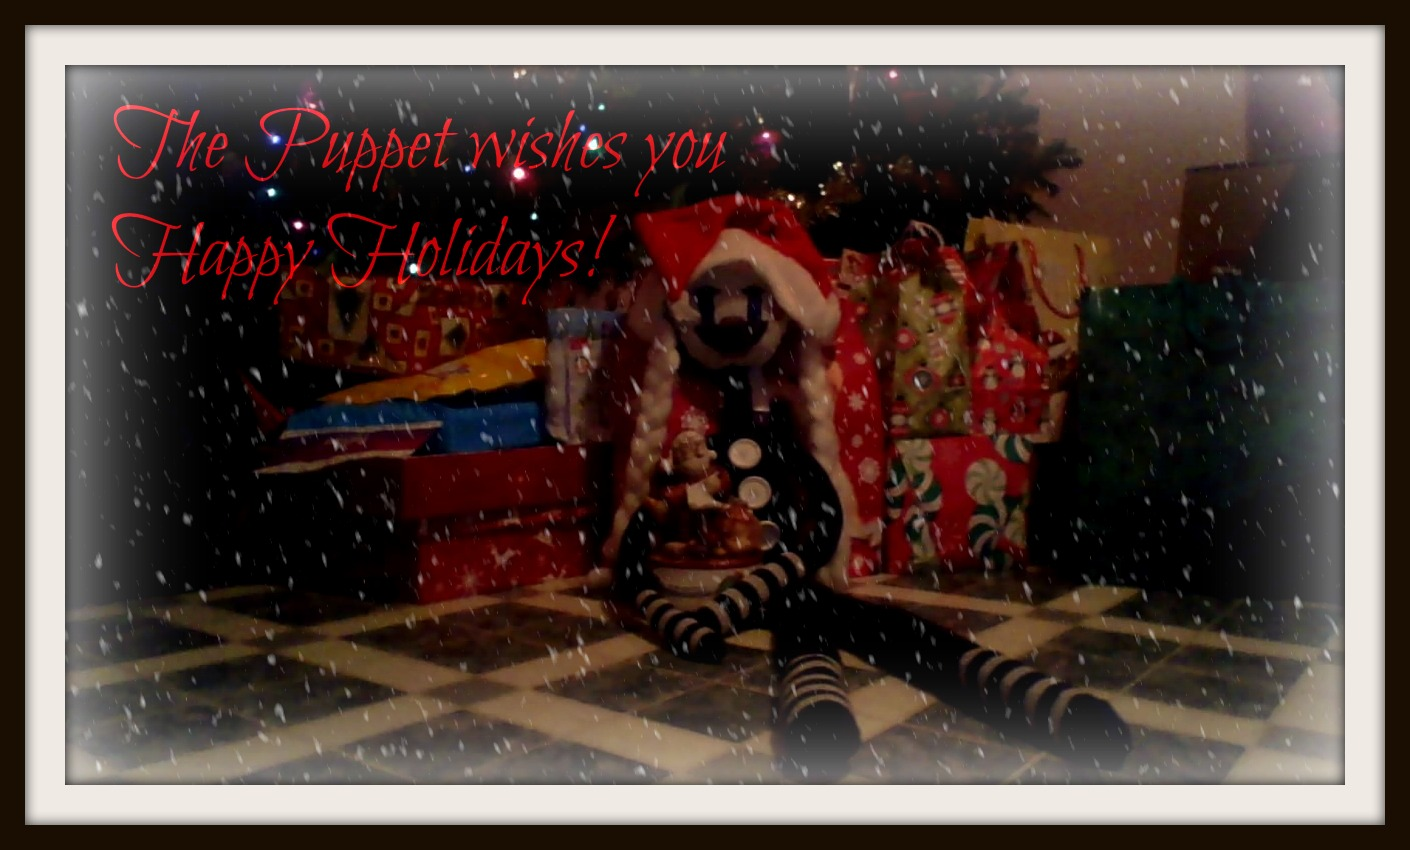 The Puppet wishes Ты Happy Holidays